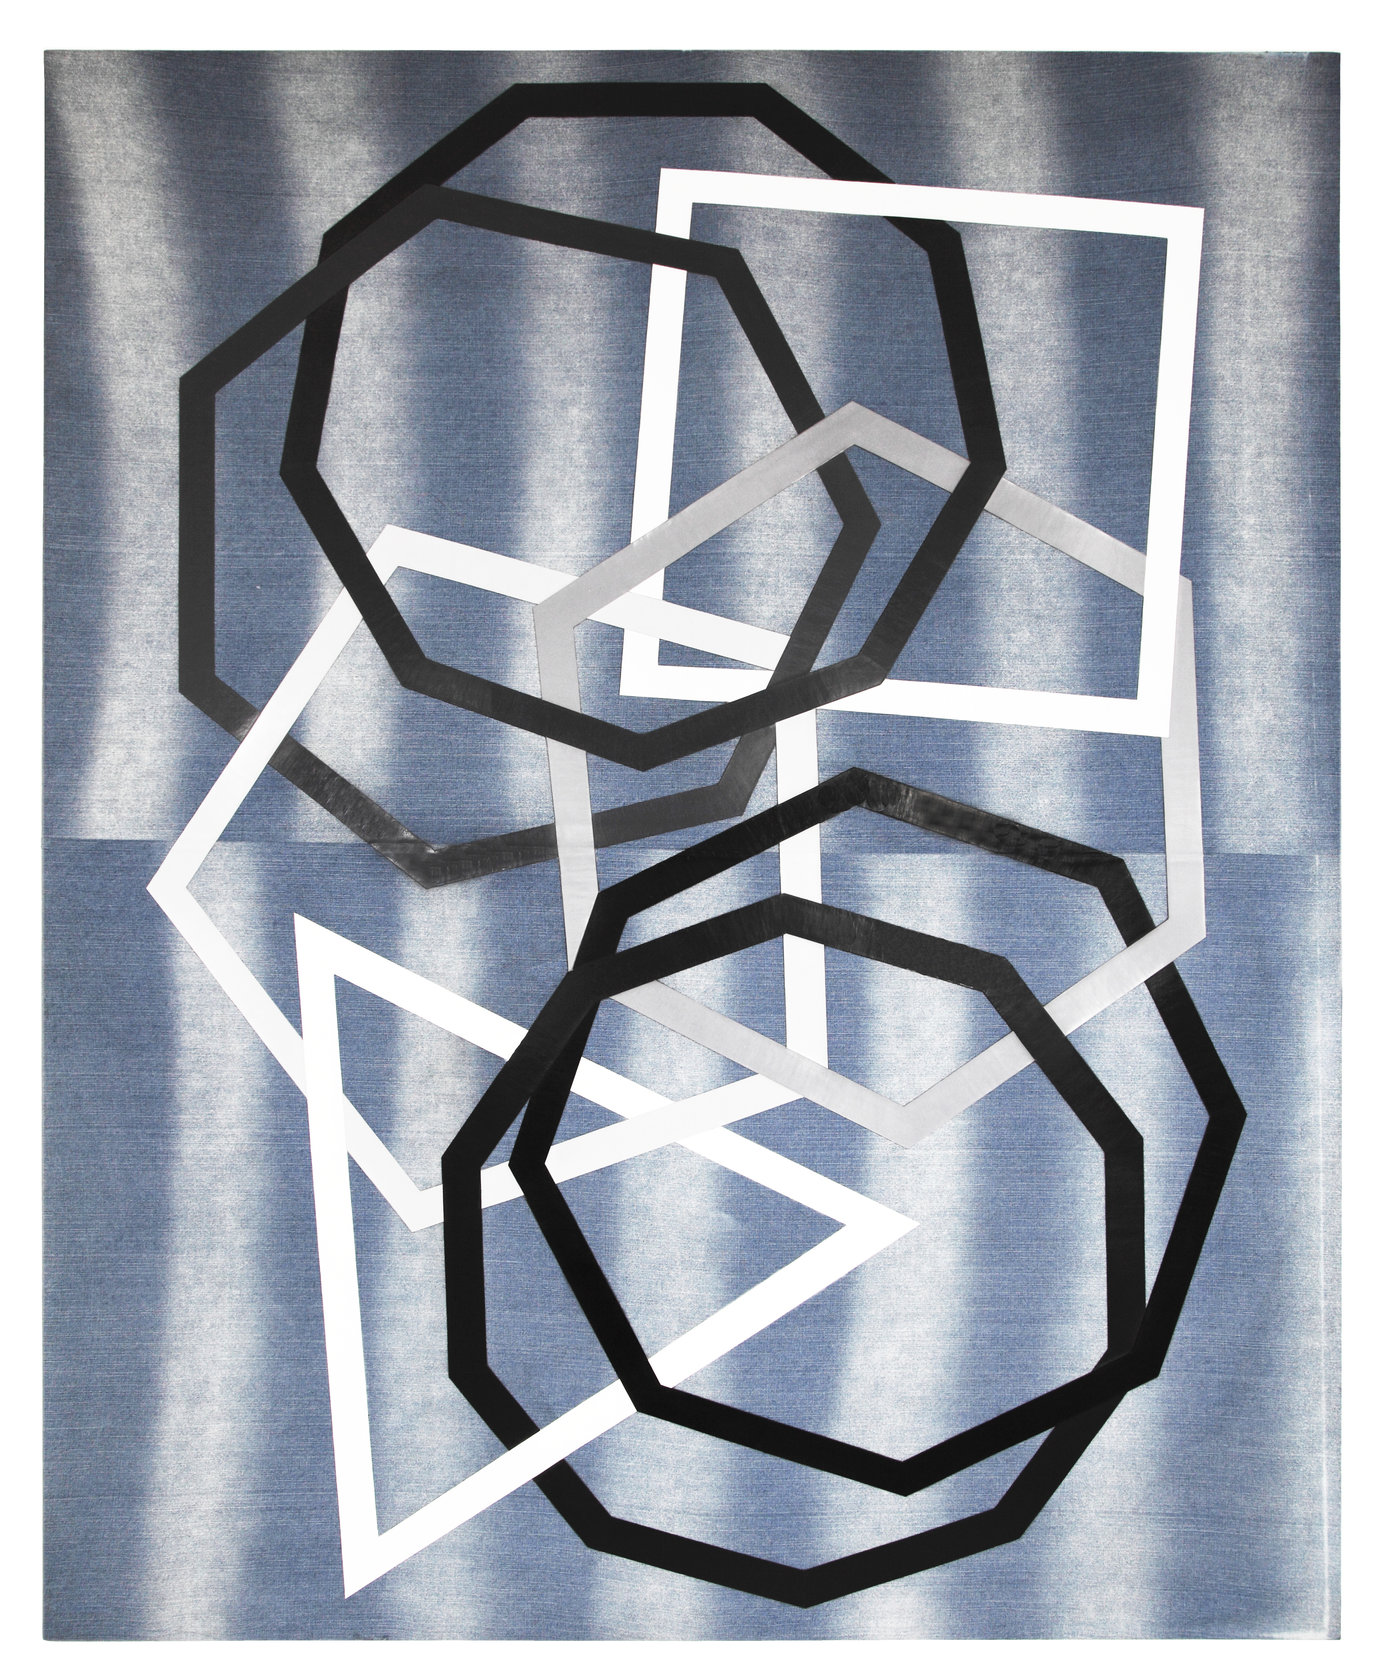 . Acrylic on denim, 250 x 200 x 8 cm, 2012.